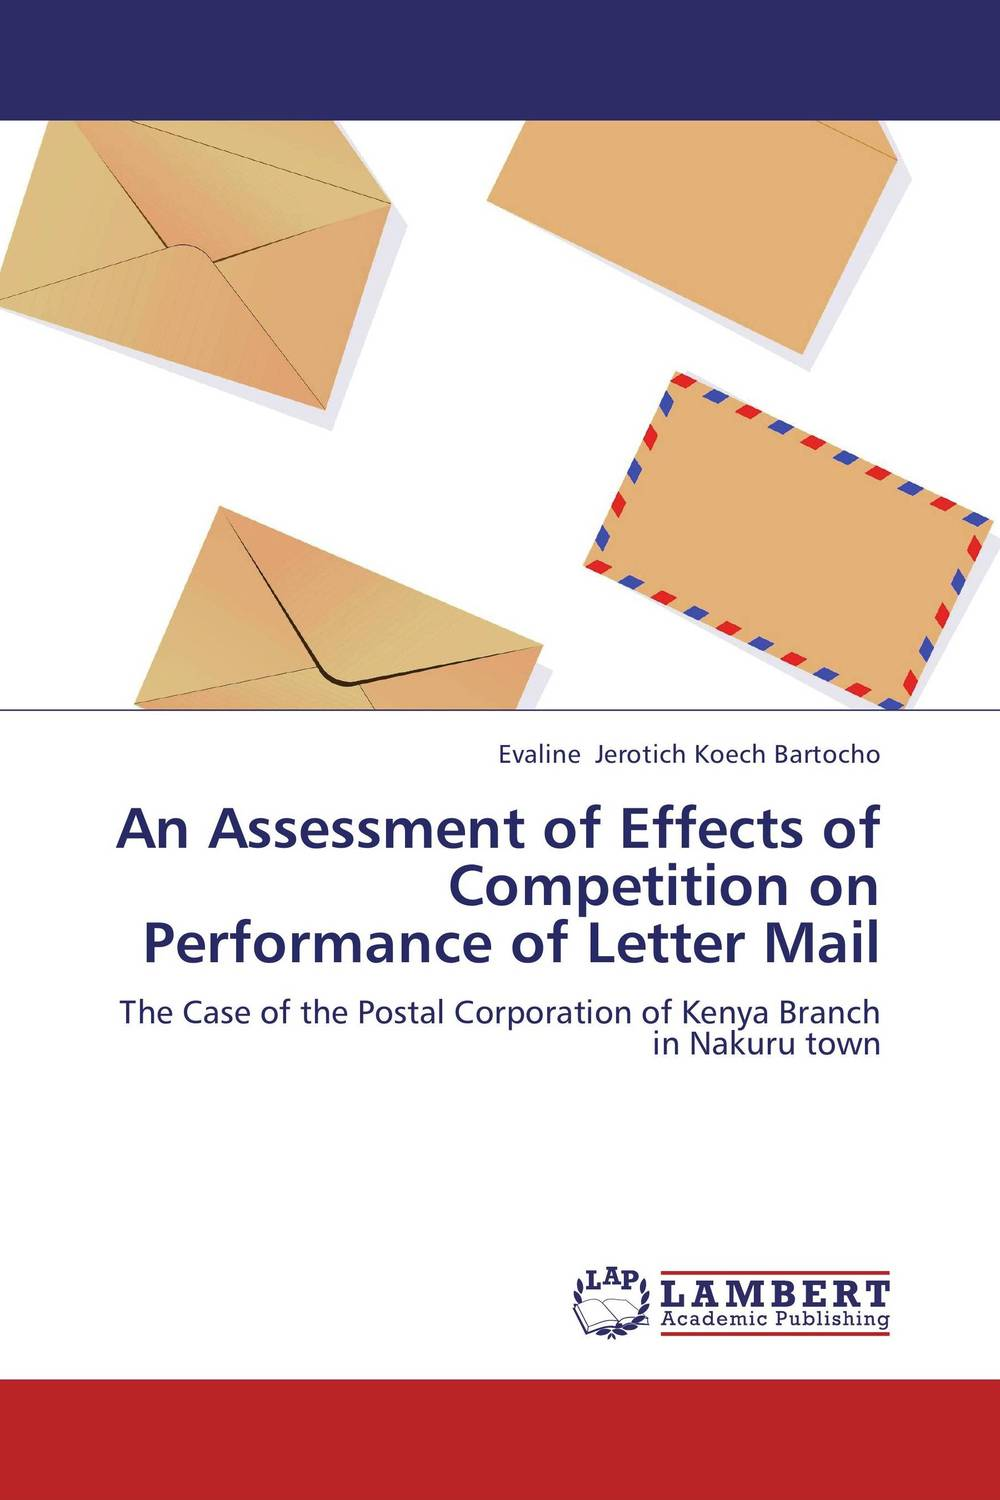 An Assessment of Effects of Competition on Performance of Letter Mail